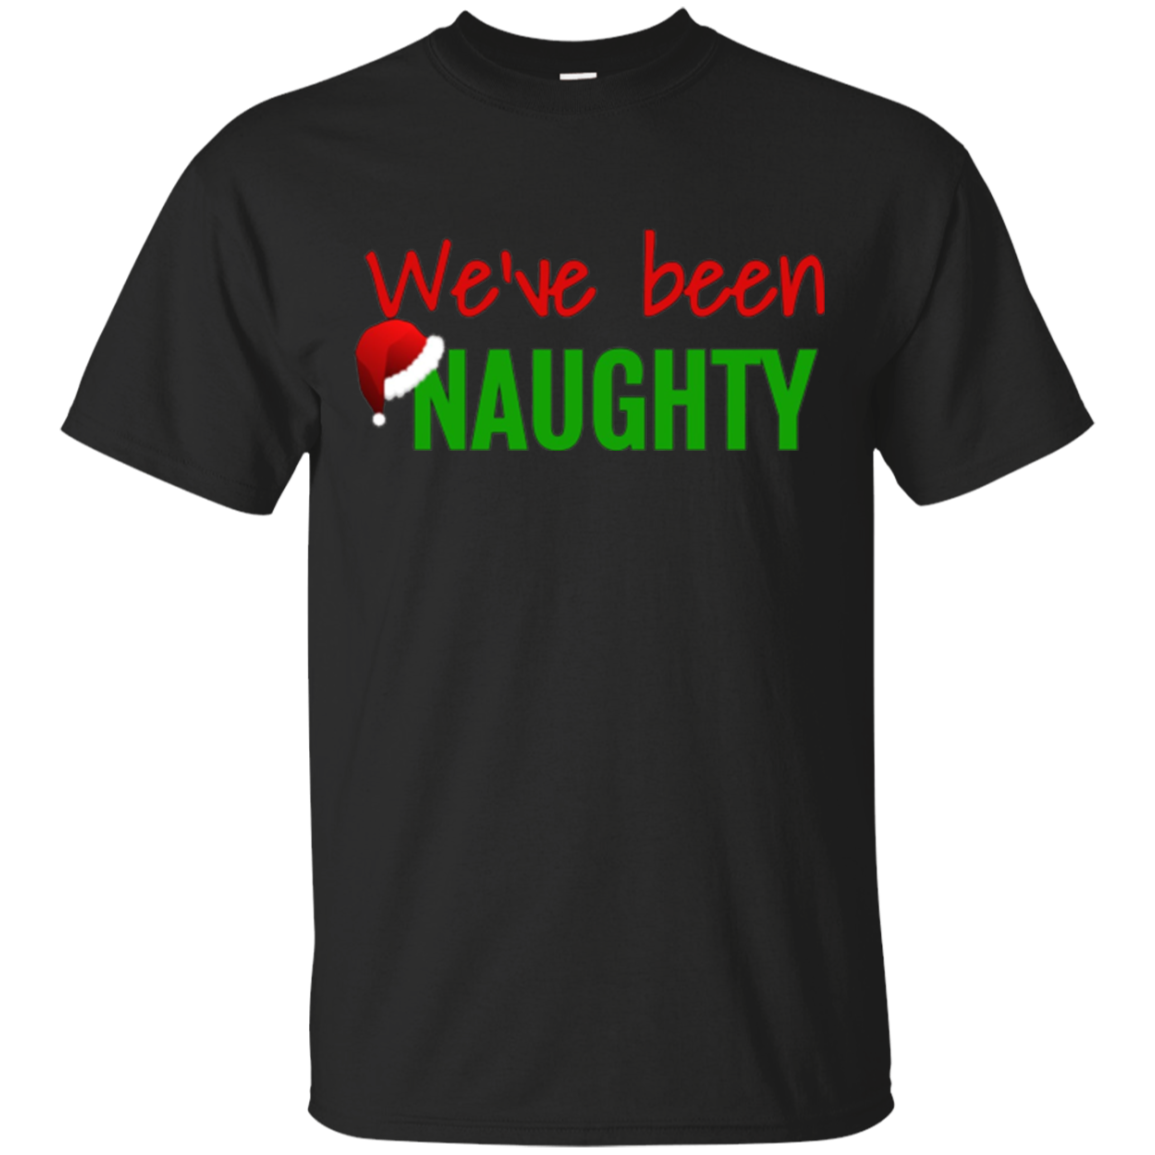 We've Been Naughty Christmas Pregnancy Announcement T-shirt